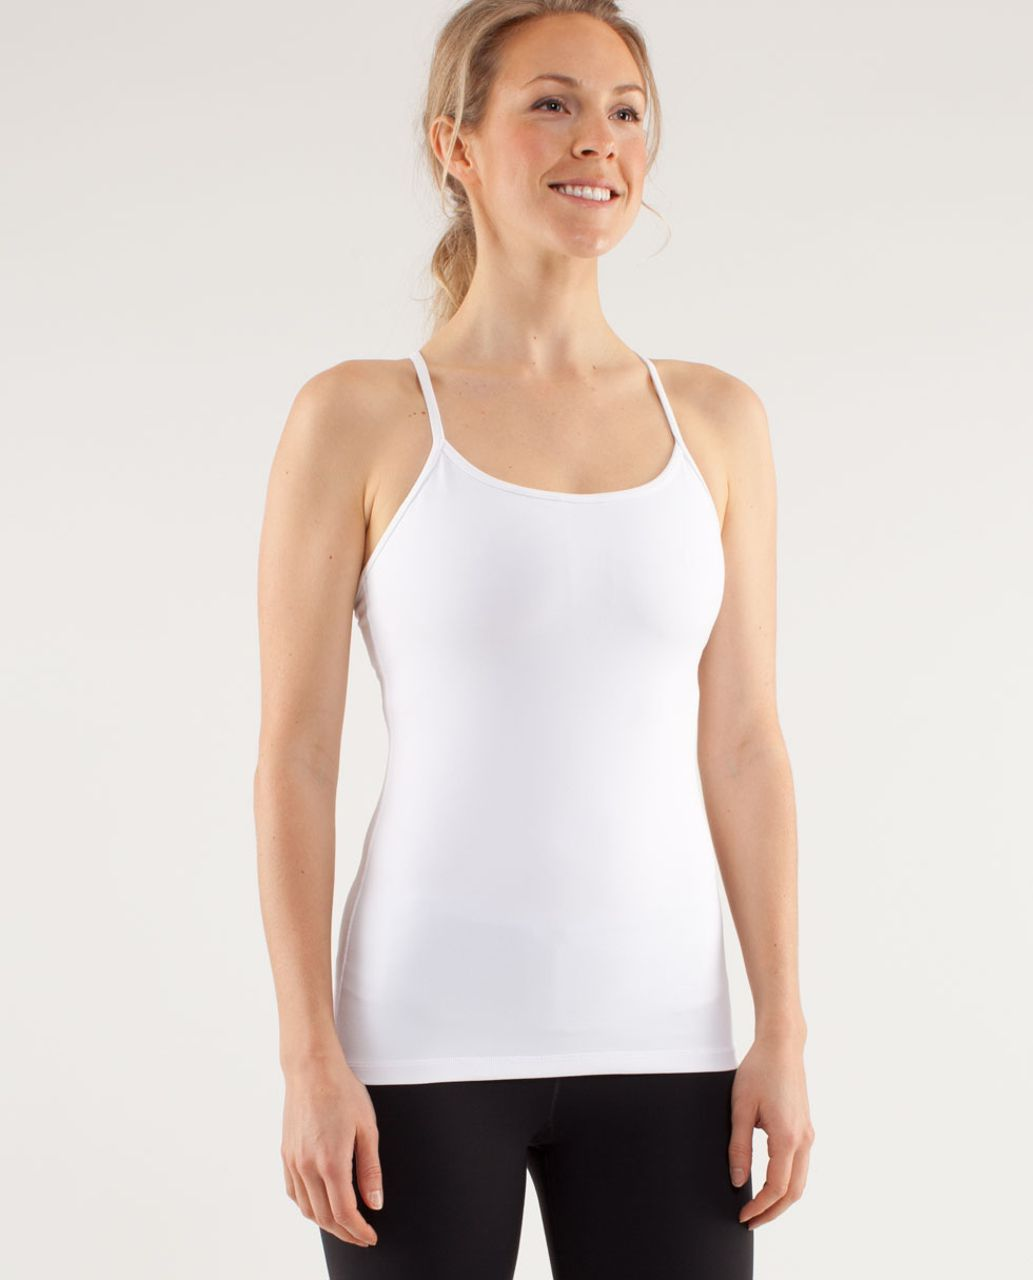 Lululemon Power Y Tank (First Release) - White